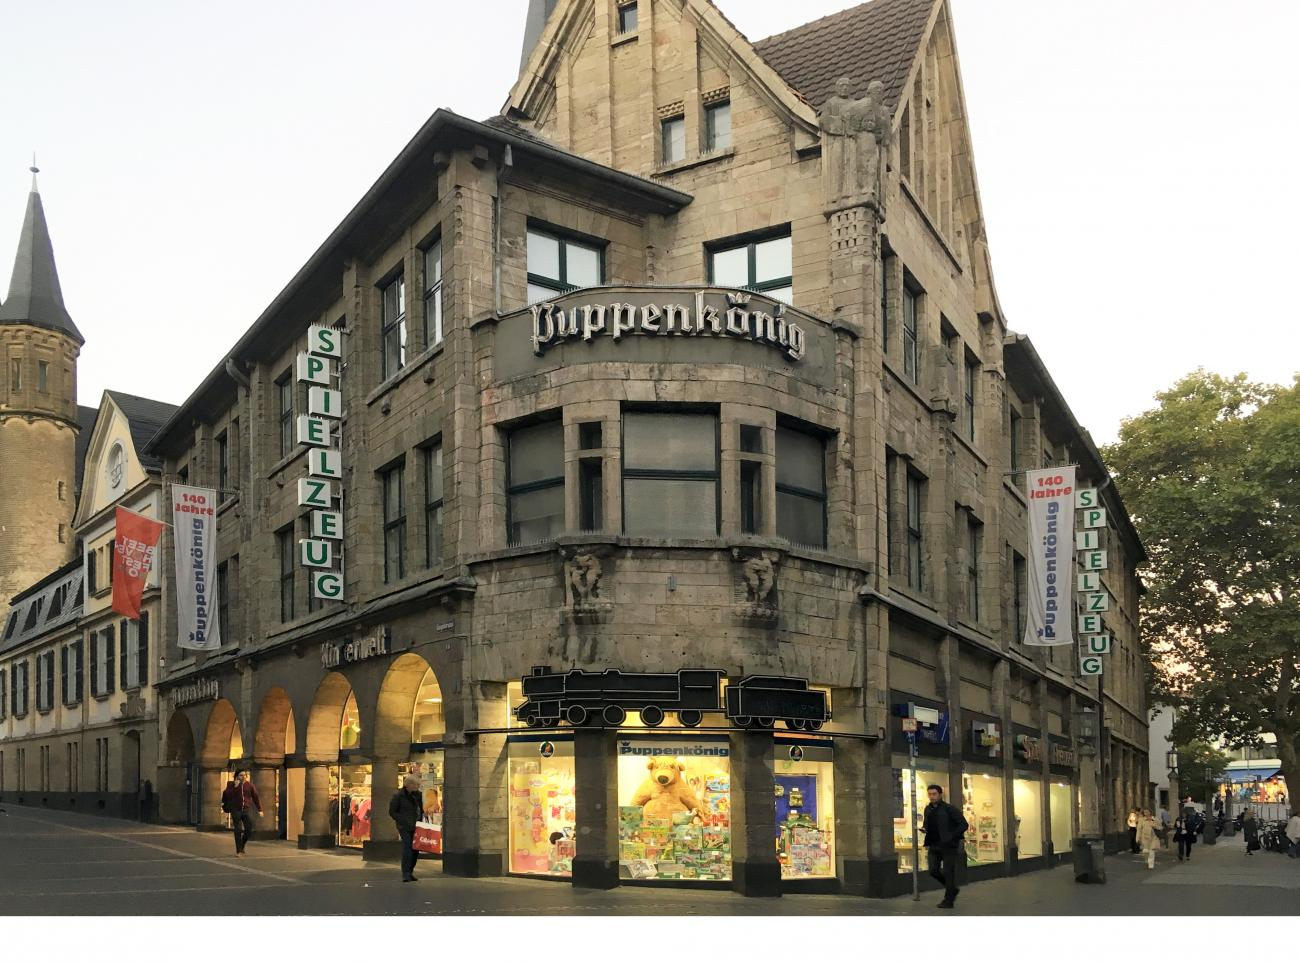 The building with the former toy shop 'Puppenkönig', Bonn